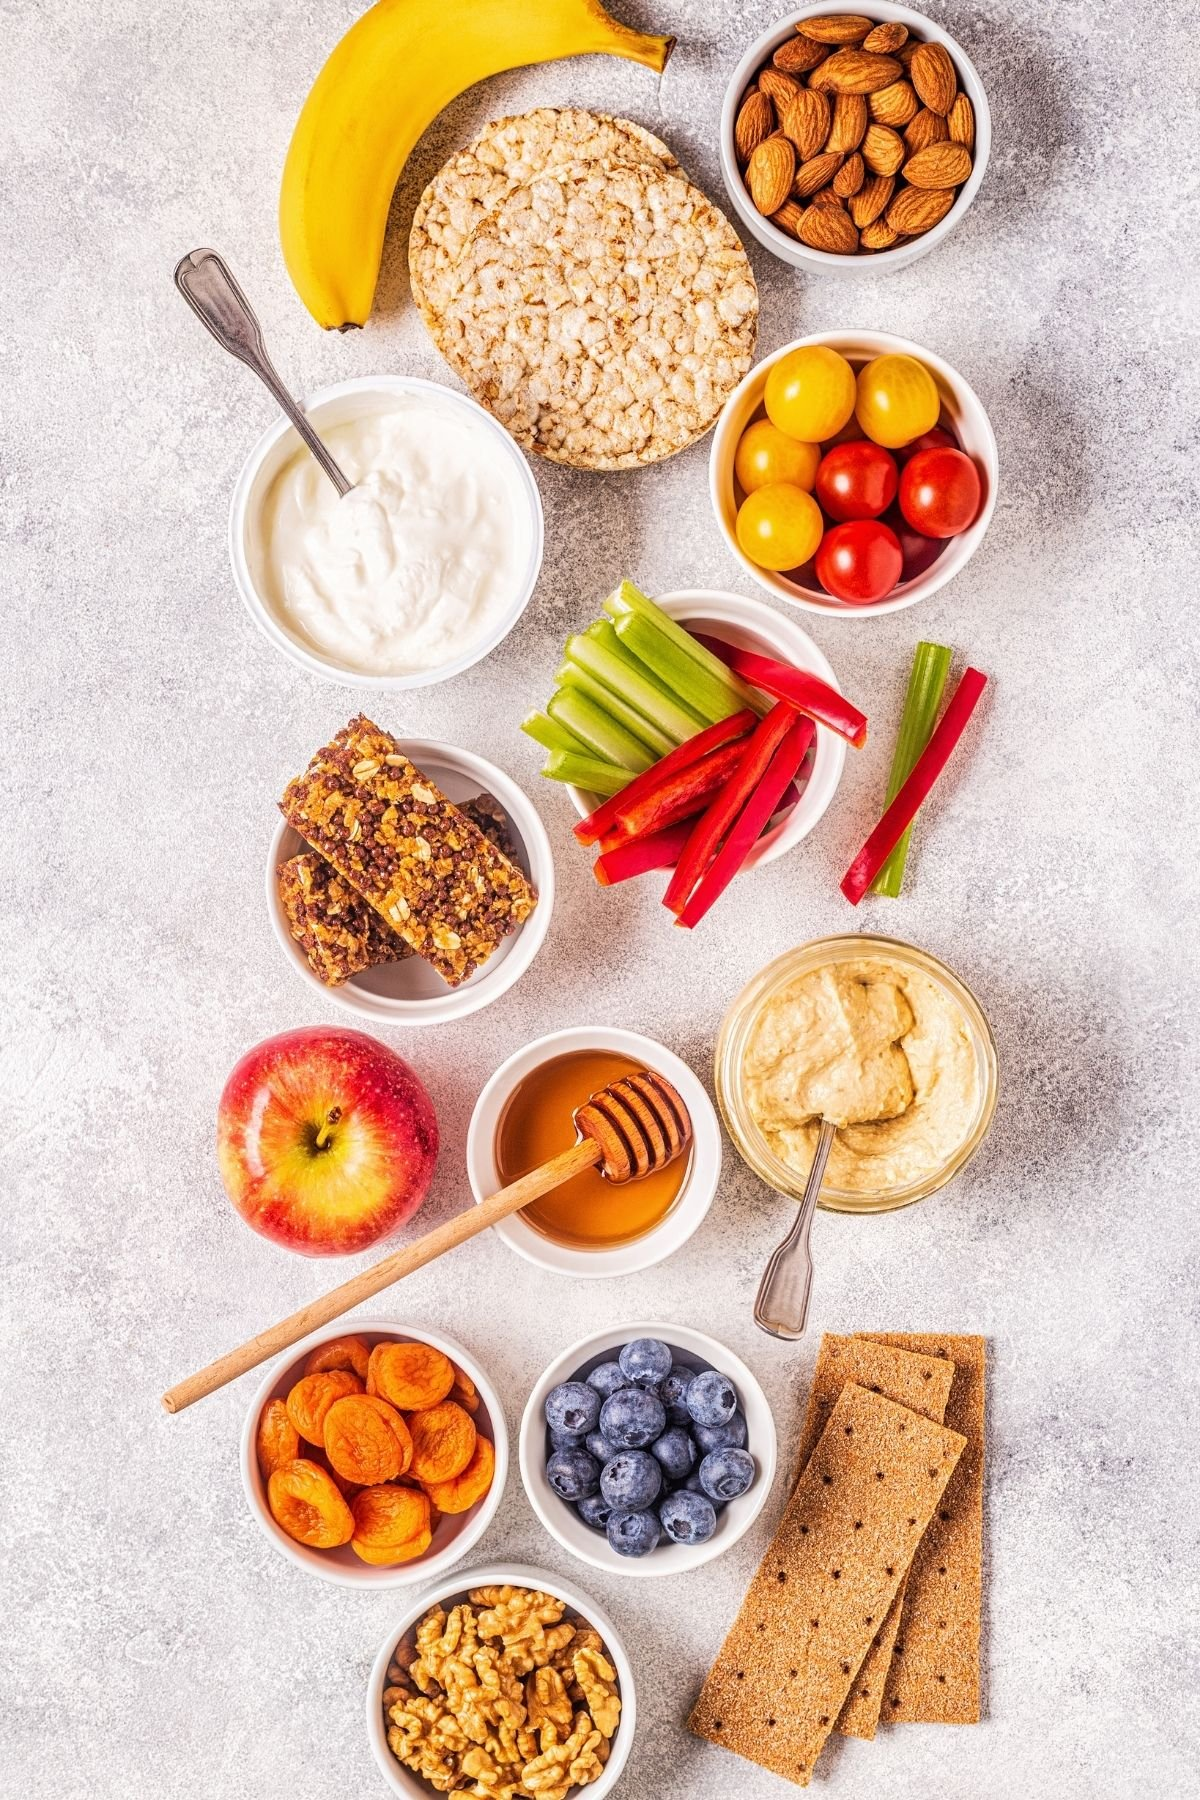 A counter full of healthy snacks